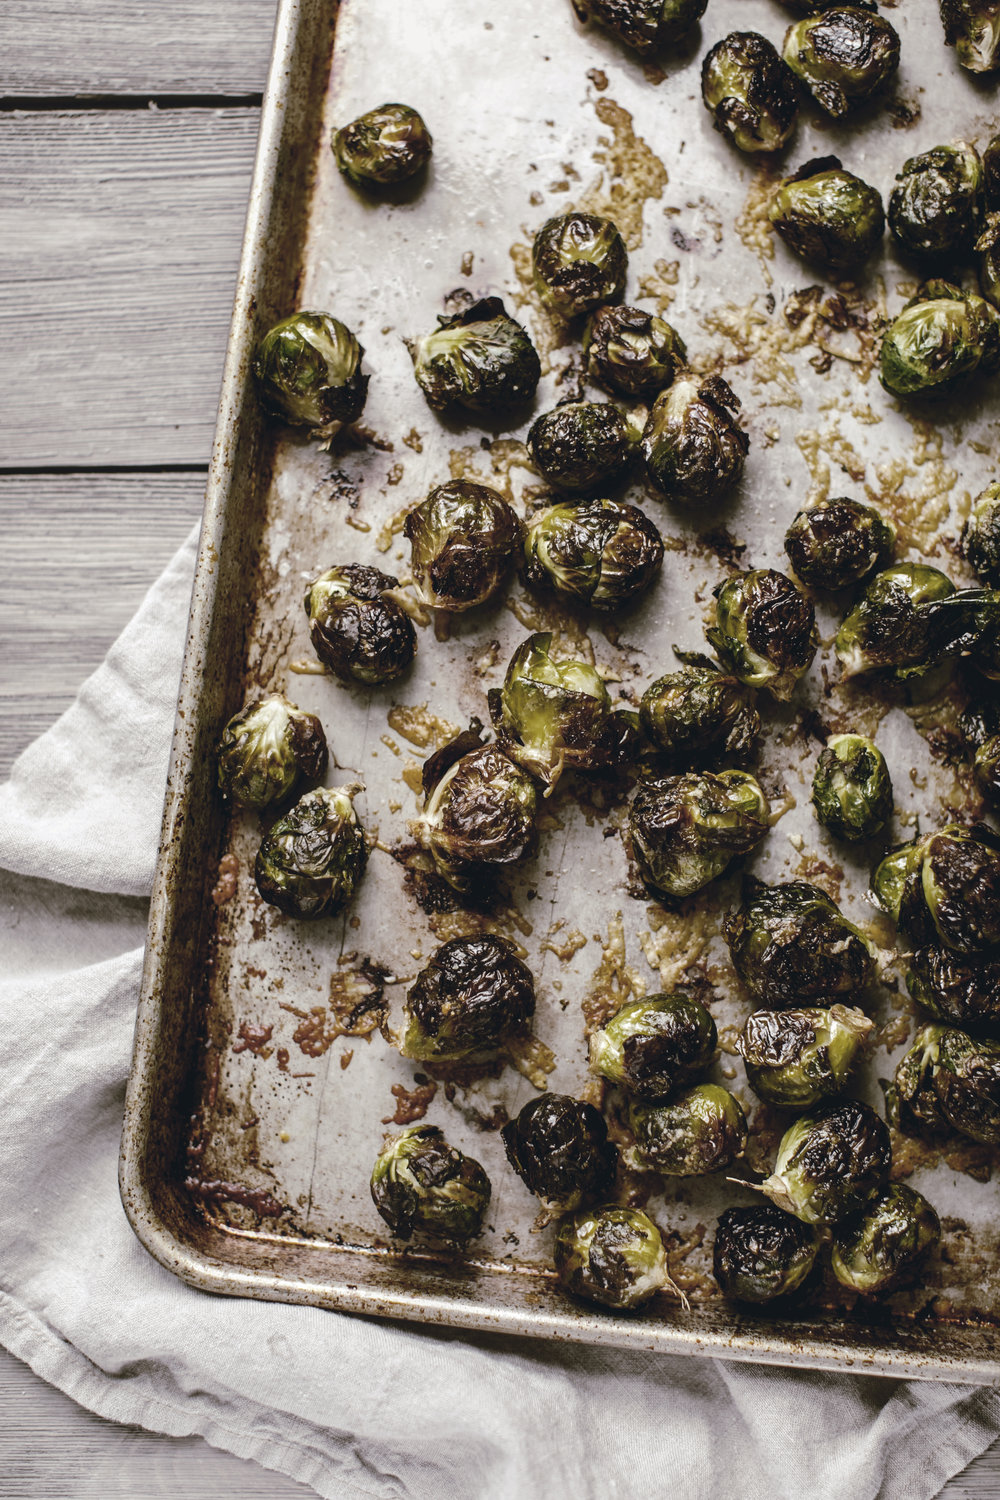 roasted brussels sprouts / heirloomed